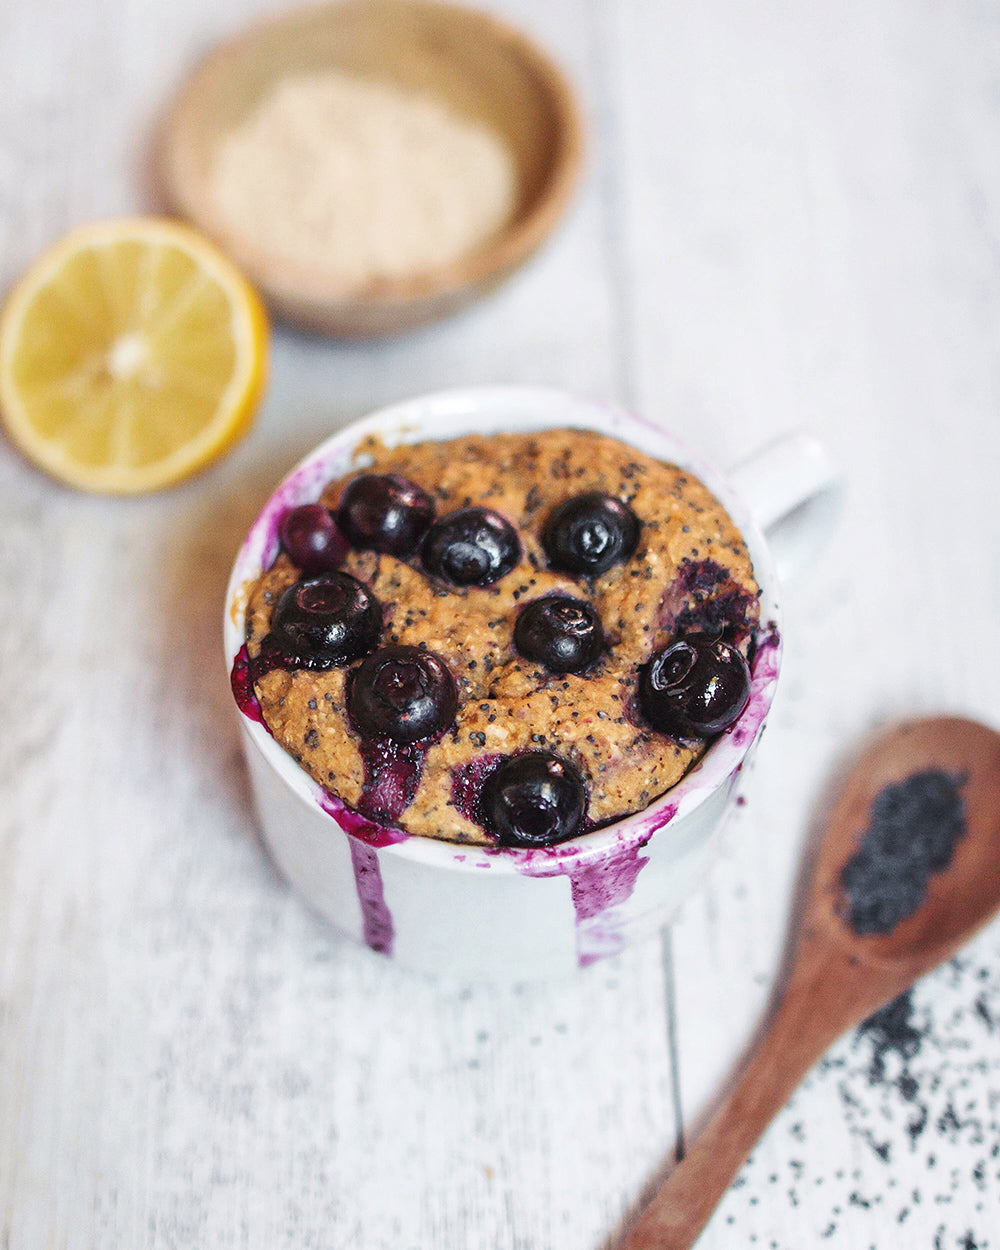 Lemon, Blueberry & Poppyseed Mug Cake